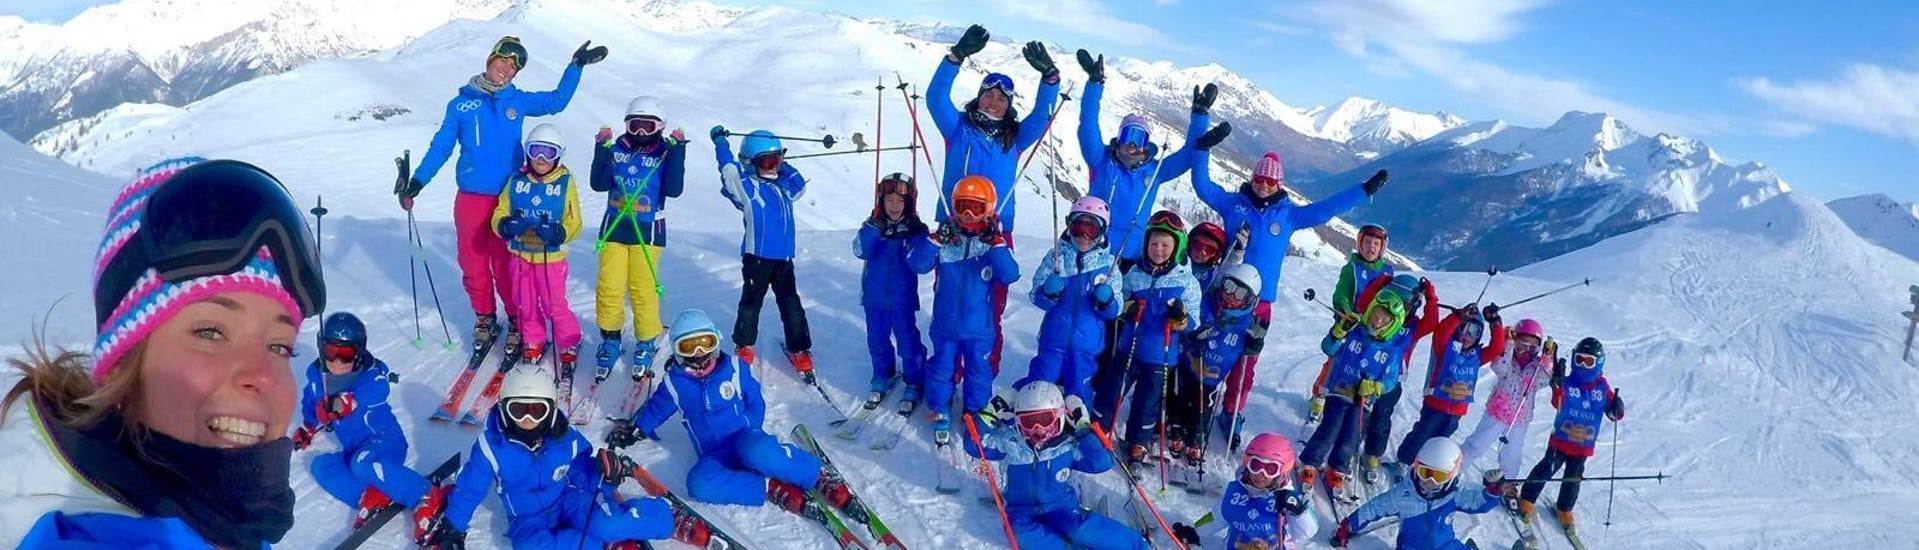 A group of children and their ski instructors from the ski school Scuola di Sci Olimpionica are posing for a photo on top of the mountain in Sestriere, before they get started with their Kids Ski Lessons (5-12 y.) - Beginner.